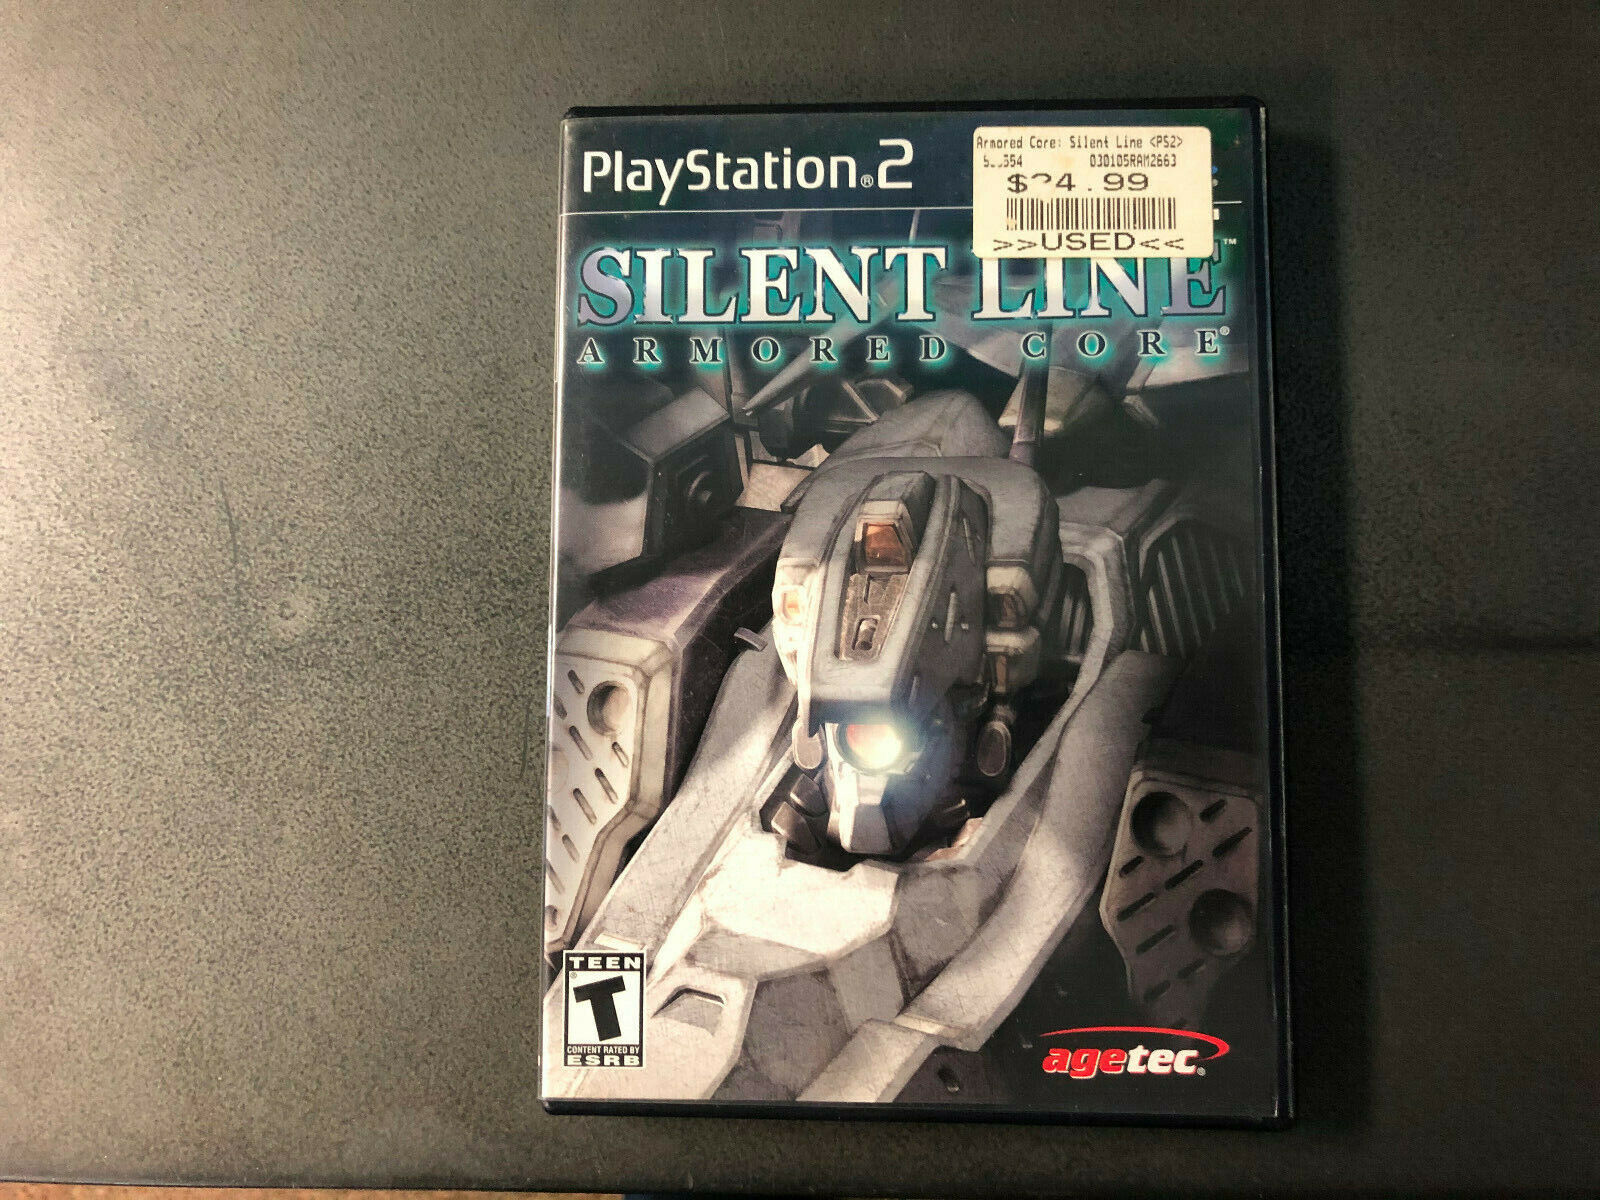 Armored Core Silent Line Sony PlayStation 2 PS2, 2003 CIB RARE Tested Working - $92.00